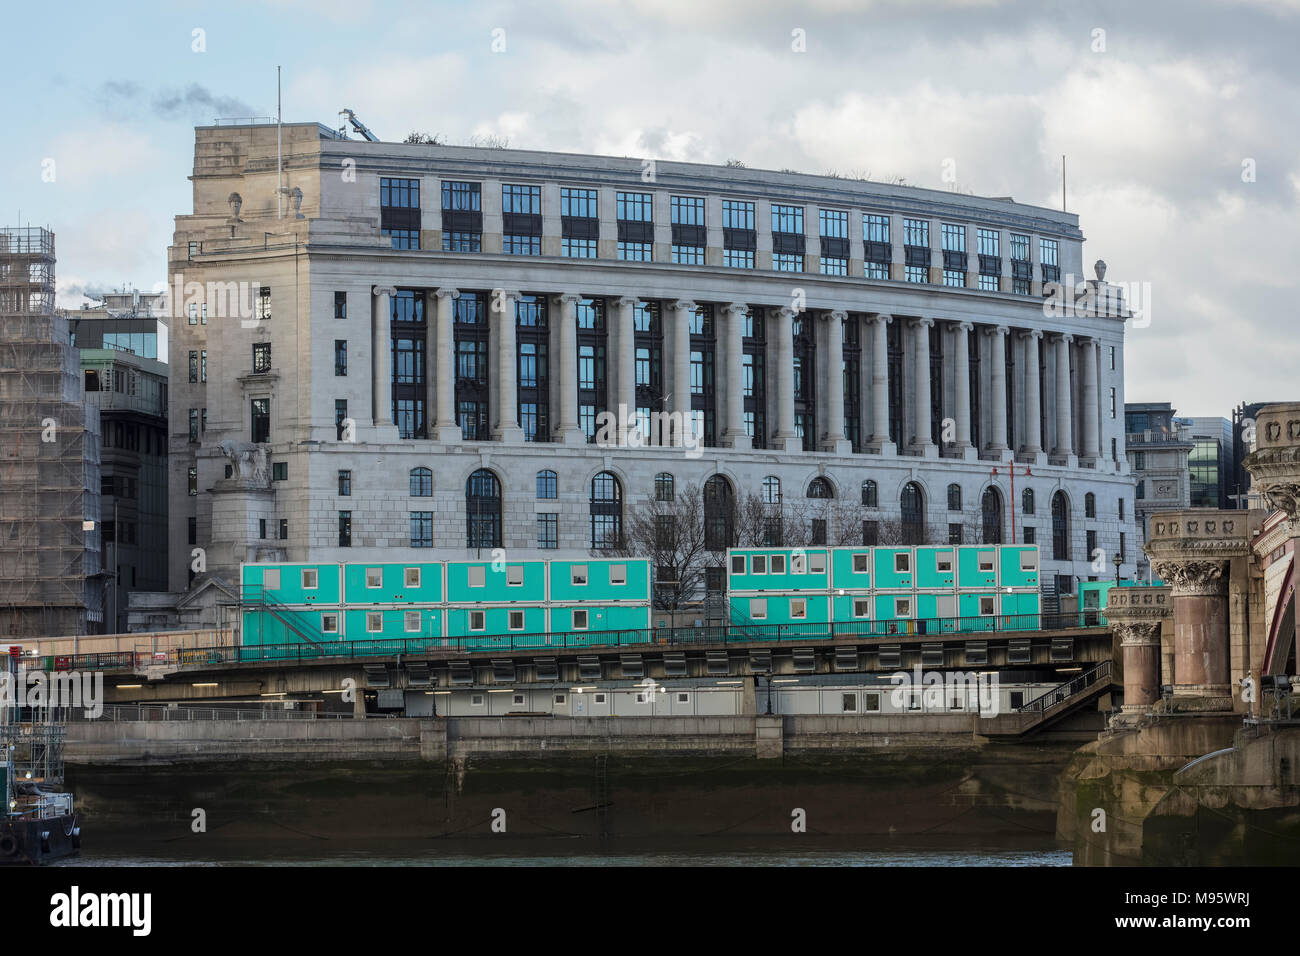 Unilever House in London - Stock Image